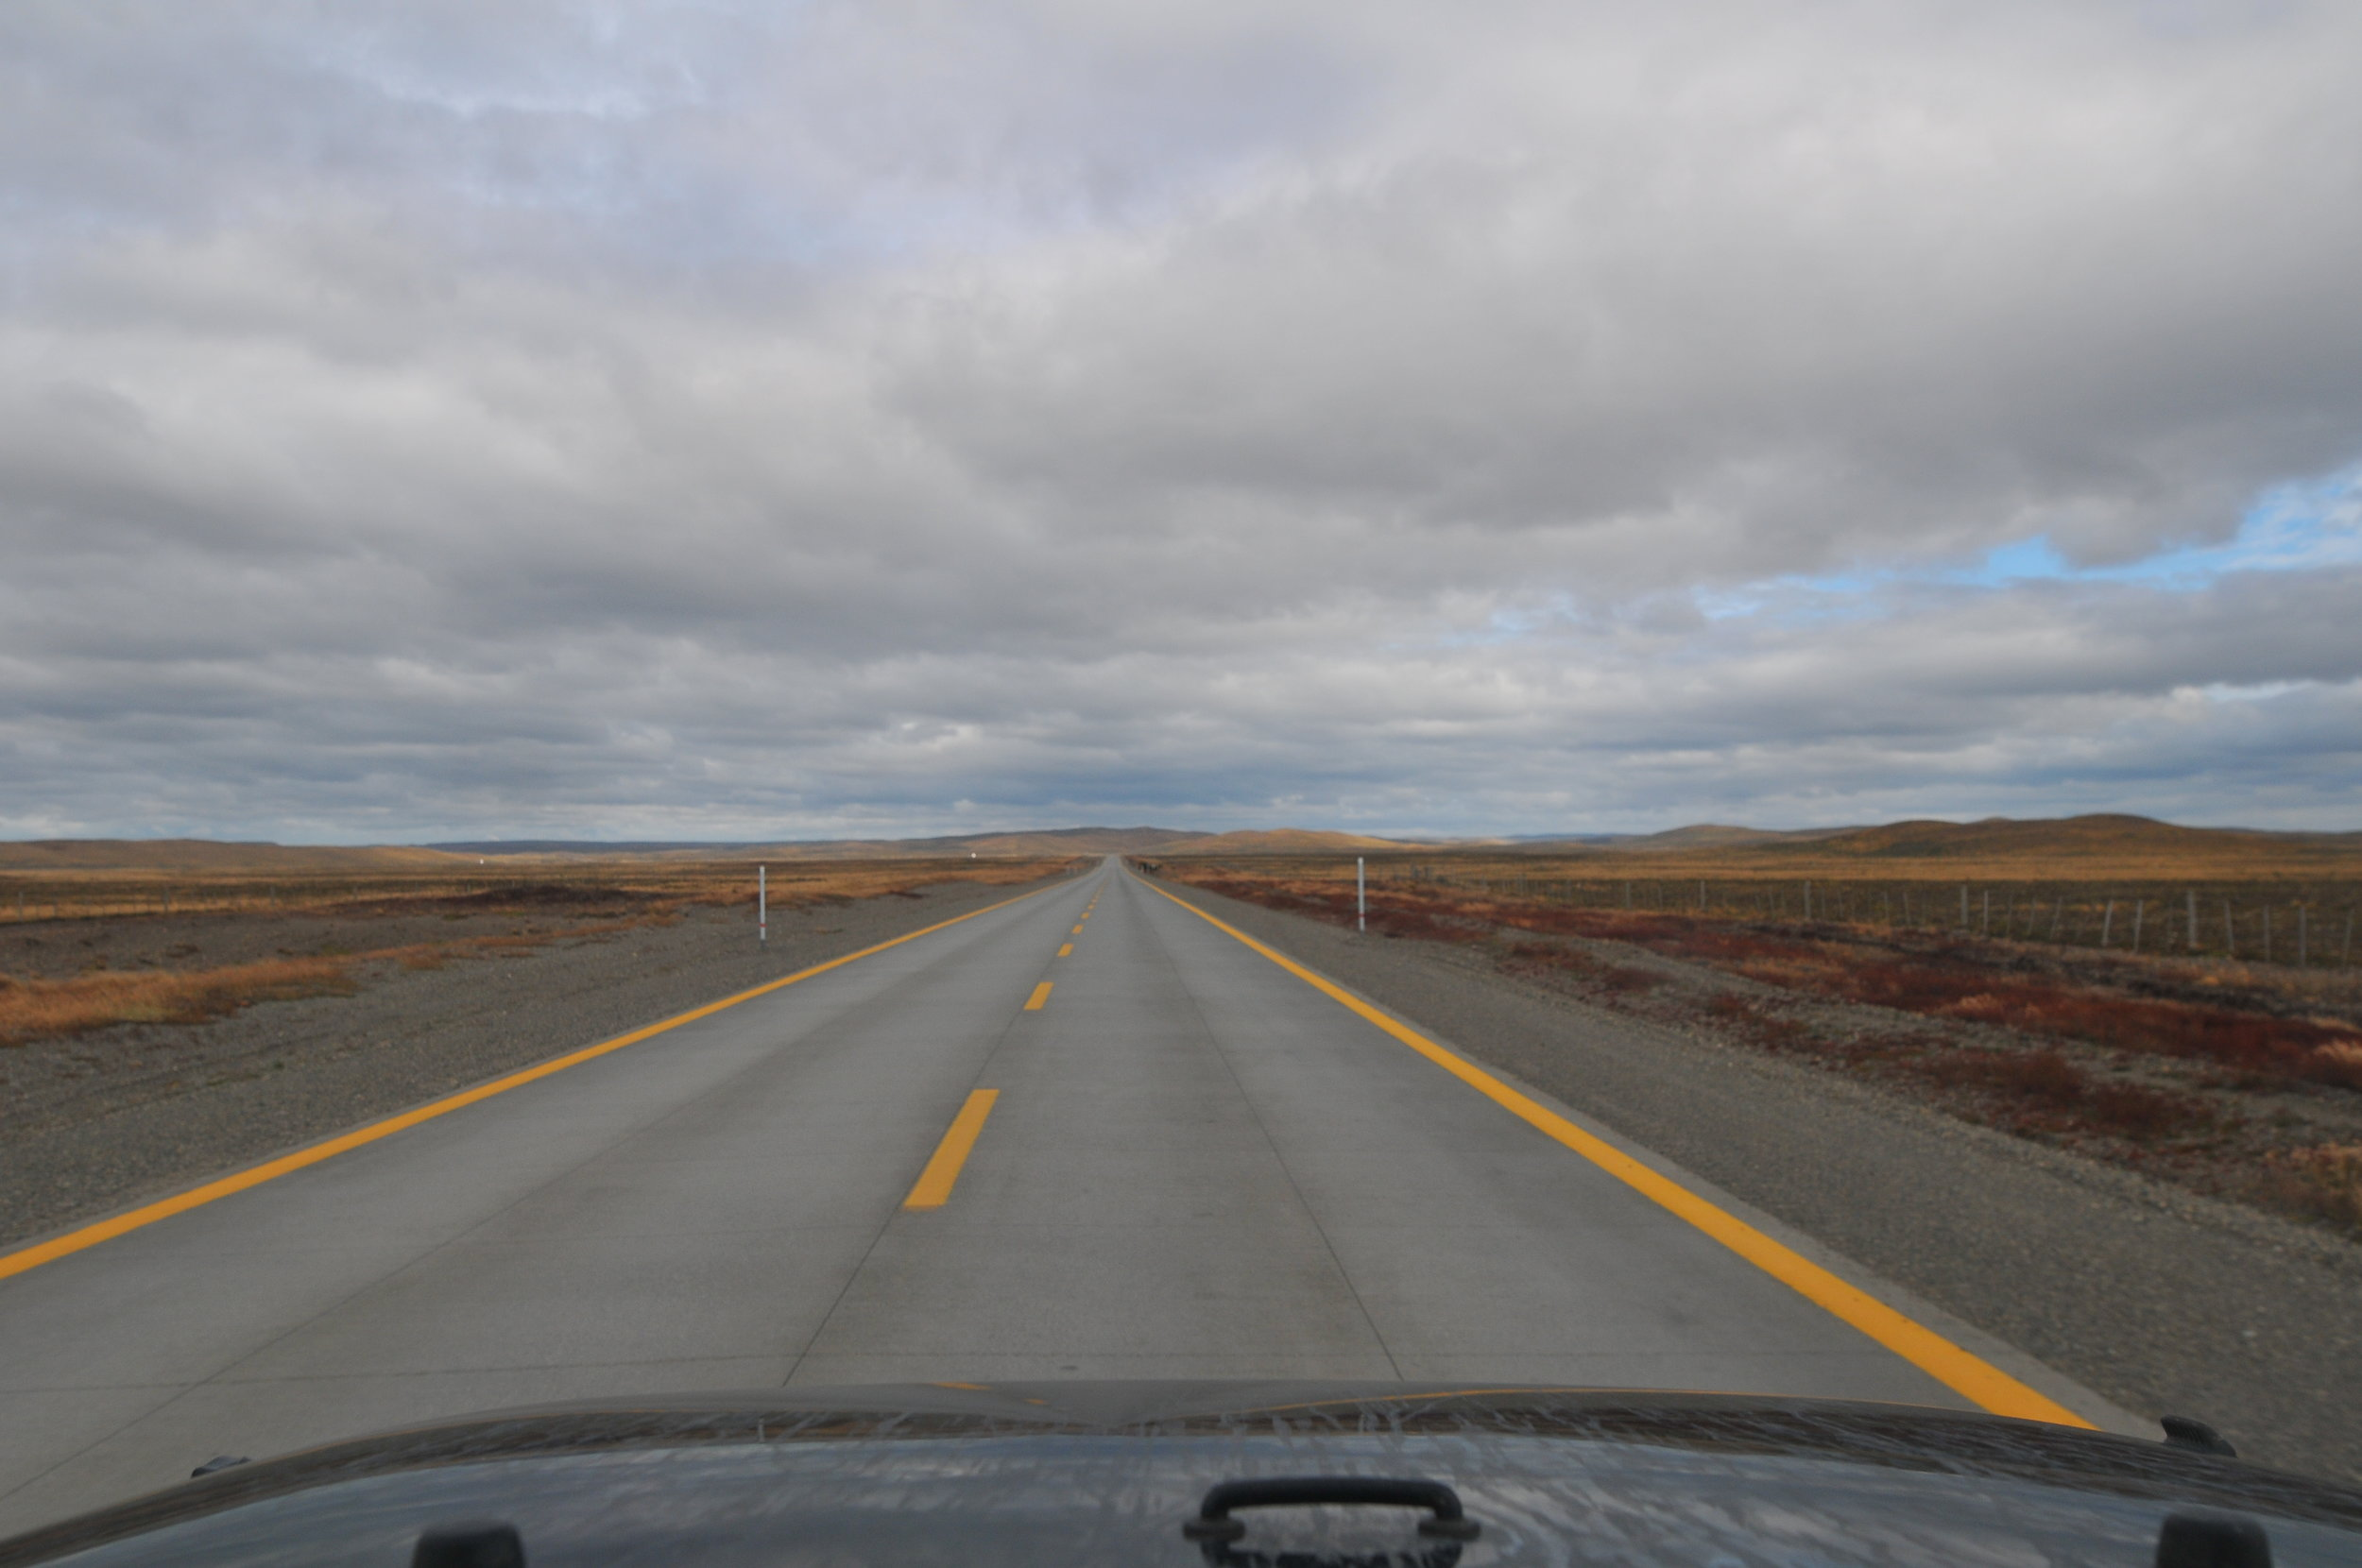 Tierra del Fuego! That's it. That's the last stretch of road before Ushuaia. Average speed is 130km/h to stay with the traffic speed and wind is blowing hard. I think that I was doing 15 l/100km on the Jeep.